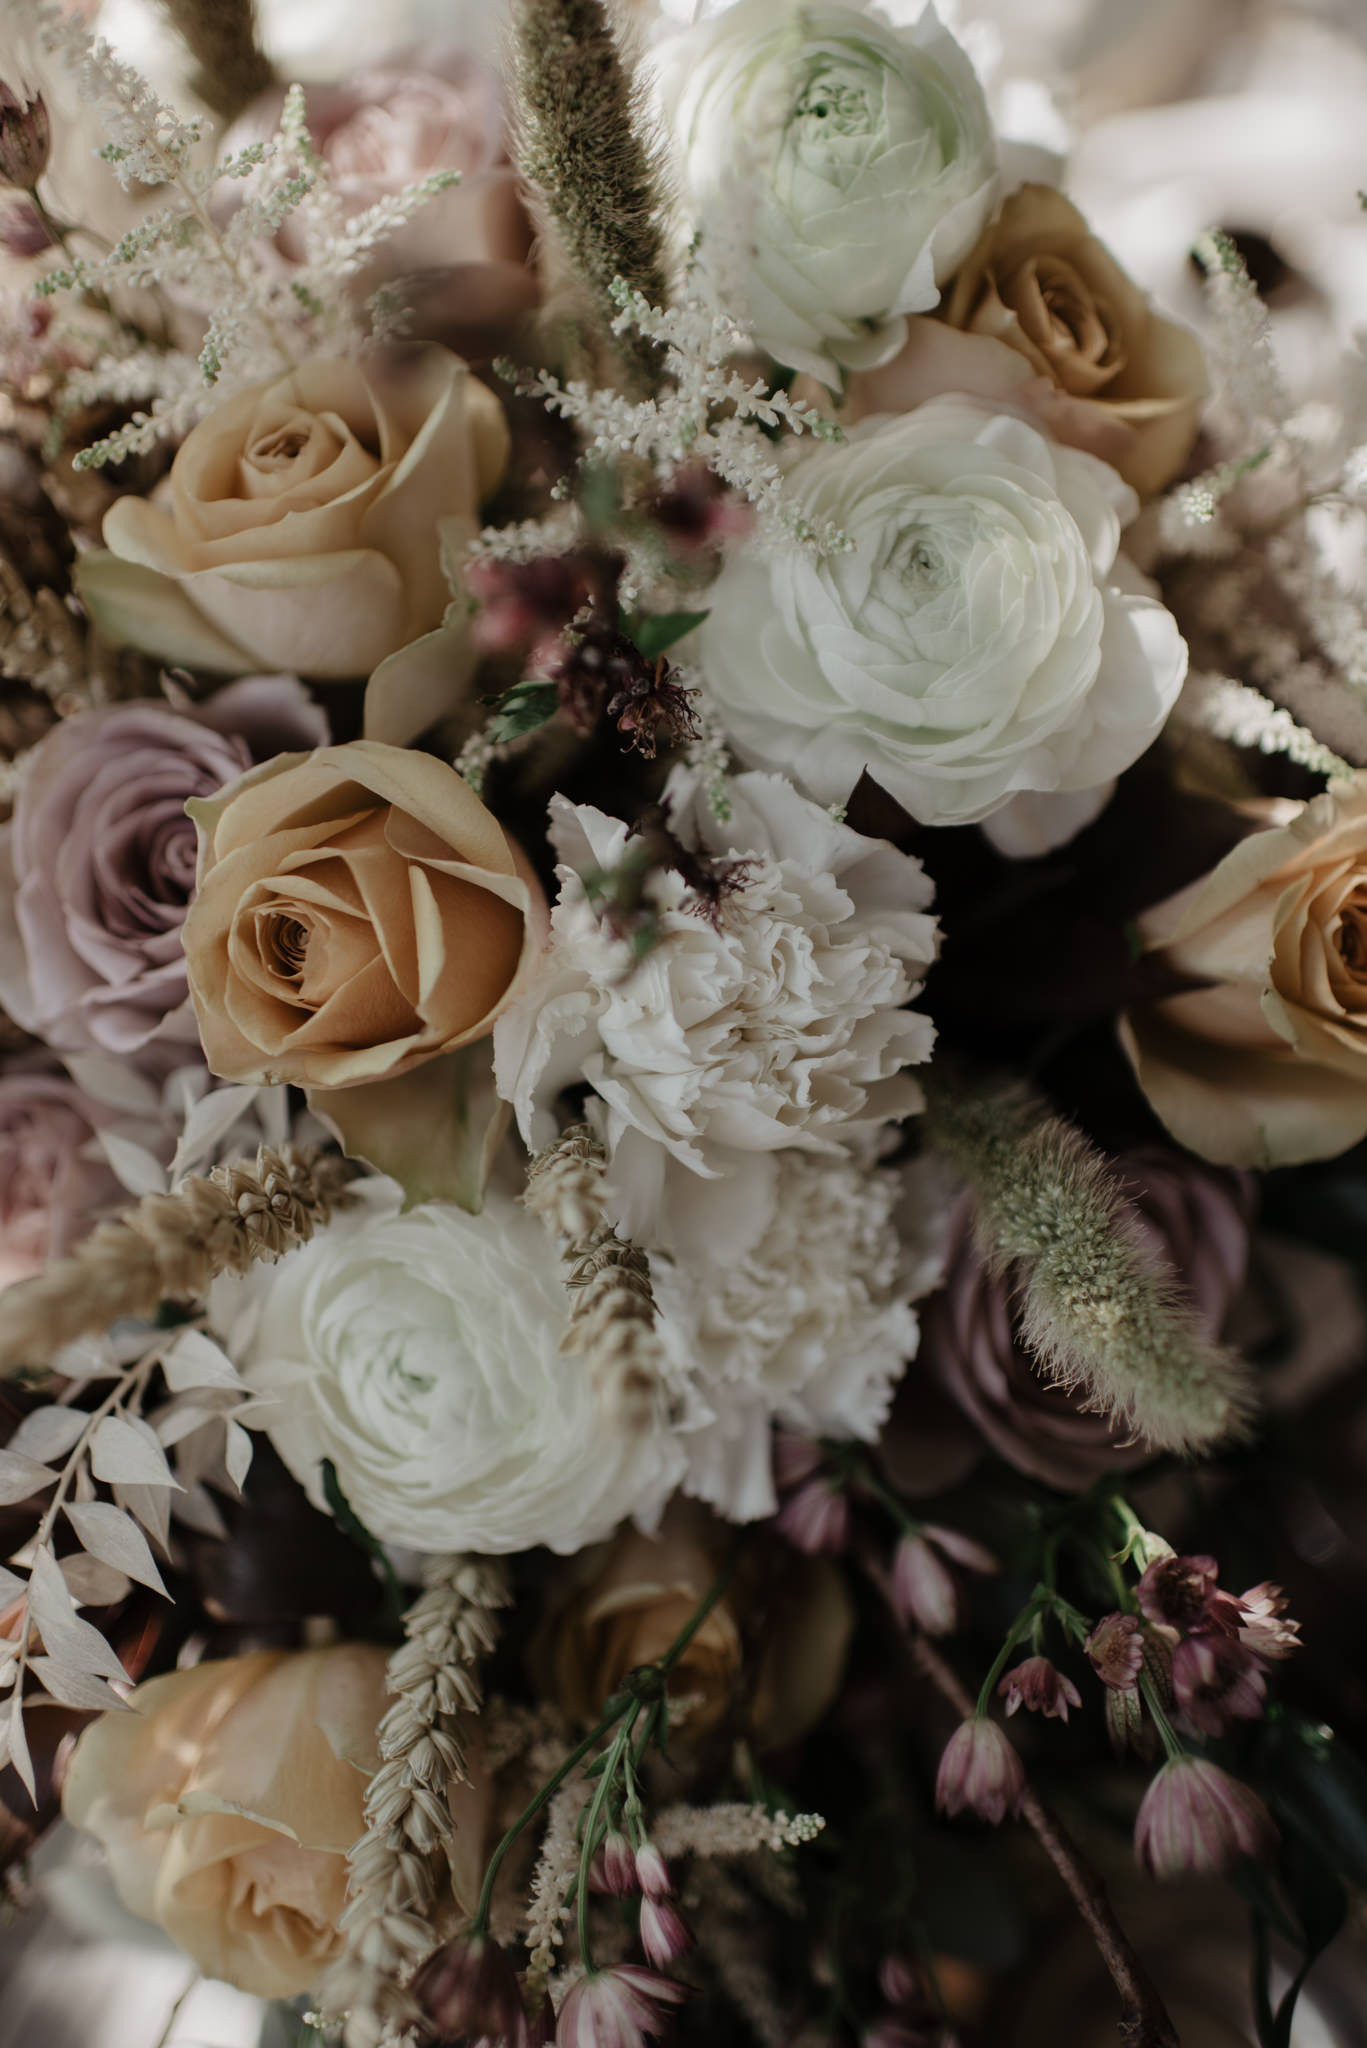 Bridal bouquet with soft muted tones of lilac and orange